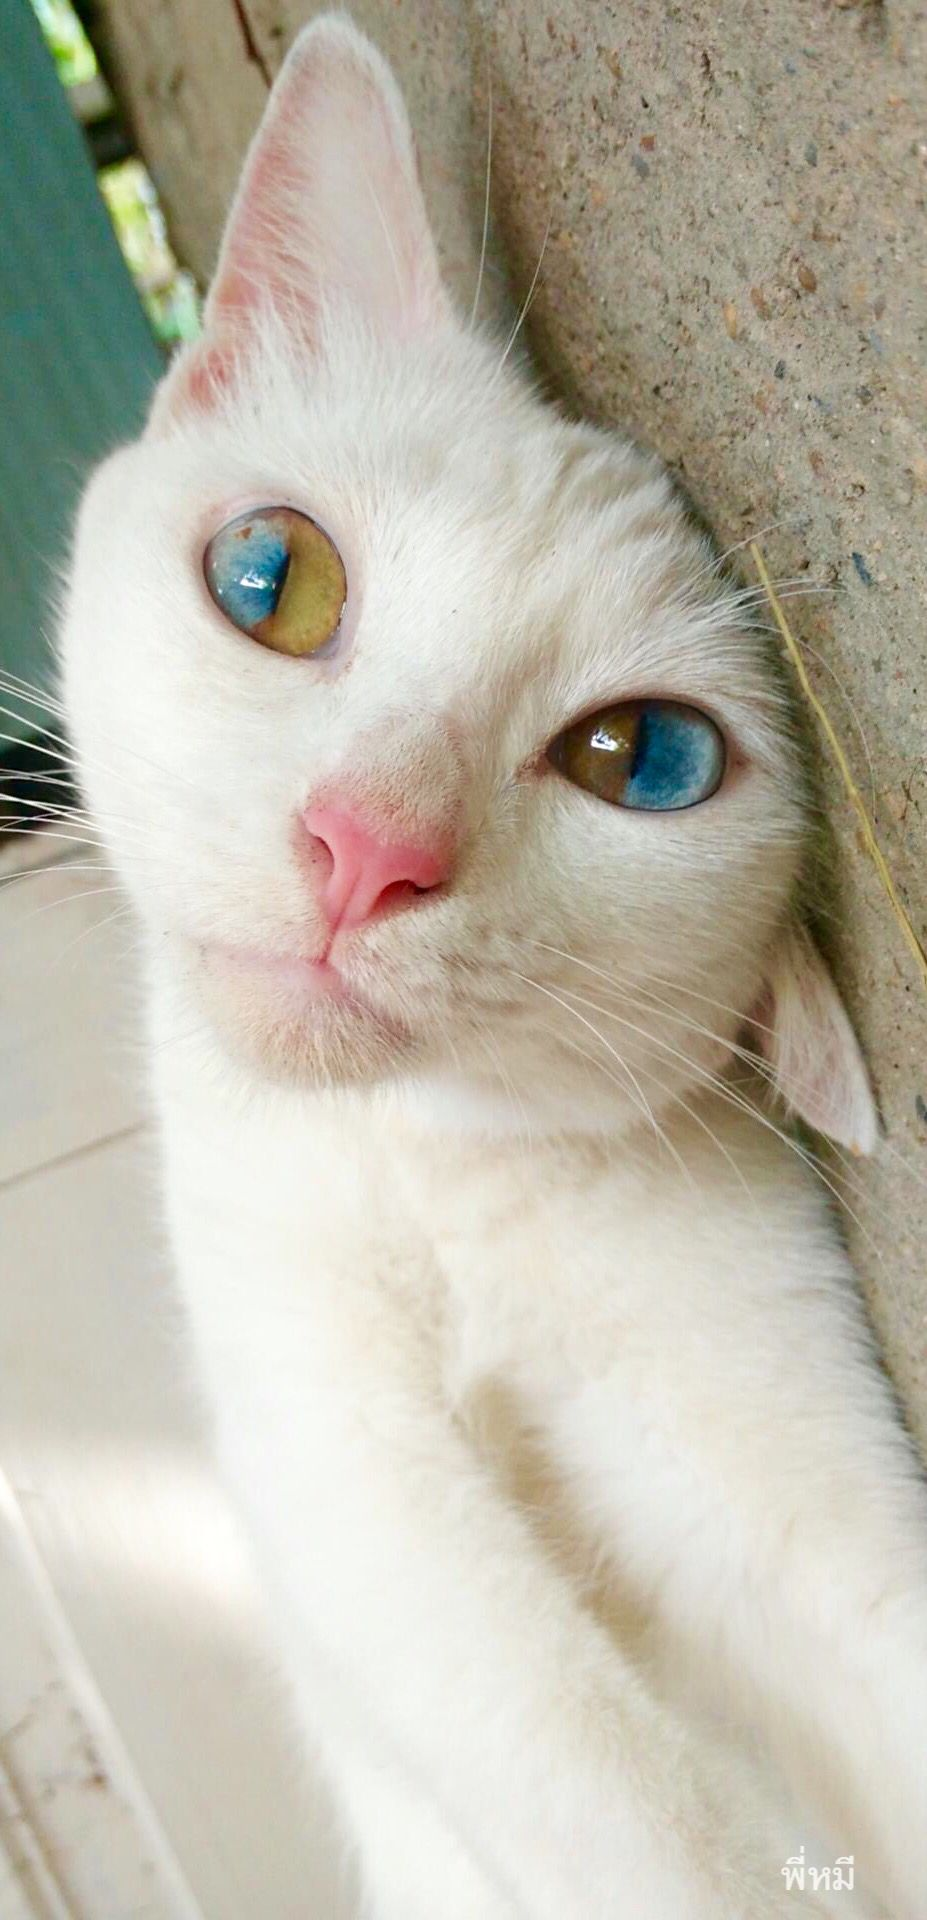 Supposedly allwhite cats with blue eyes are deaf